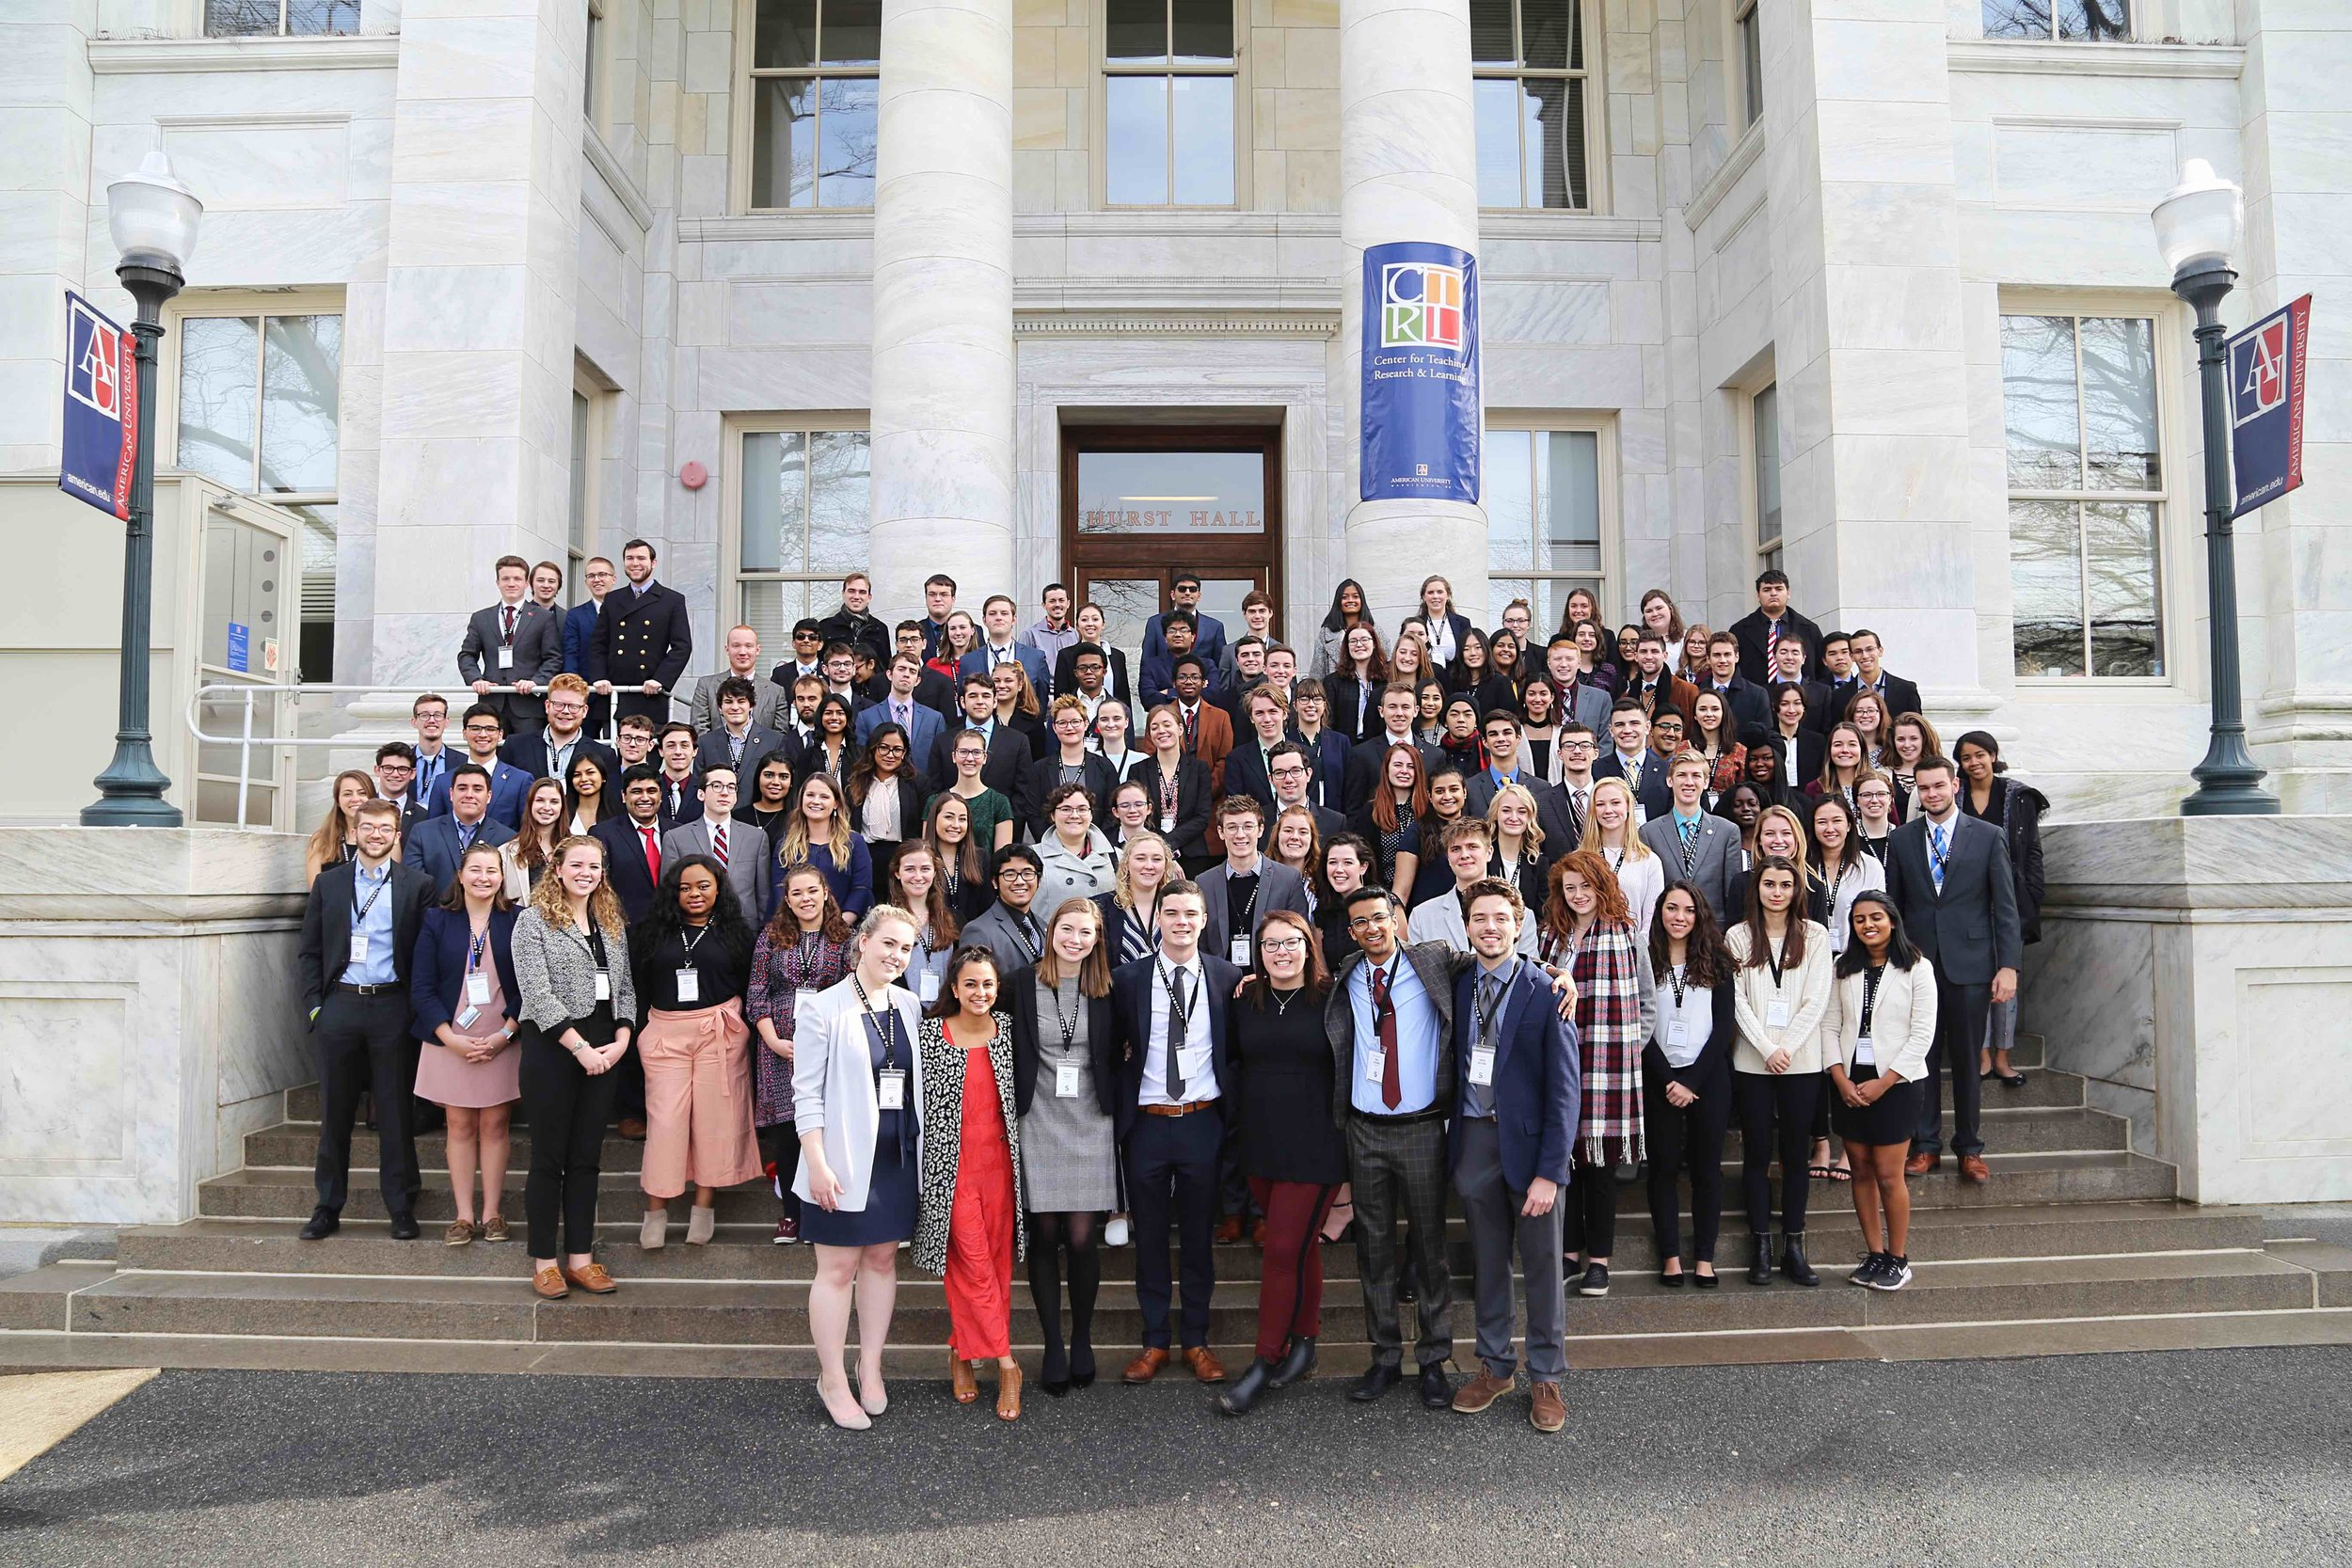 The Amerimunc staff  mADE UP OVER 180 AU STUDENTS FROM 30 MAJORS